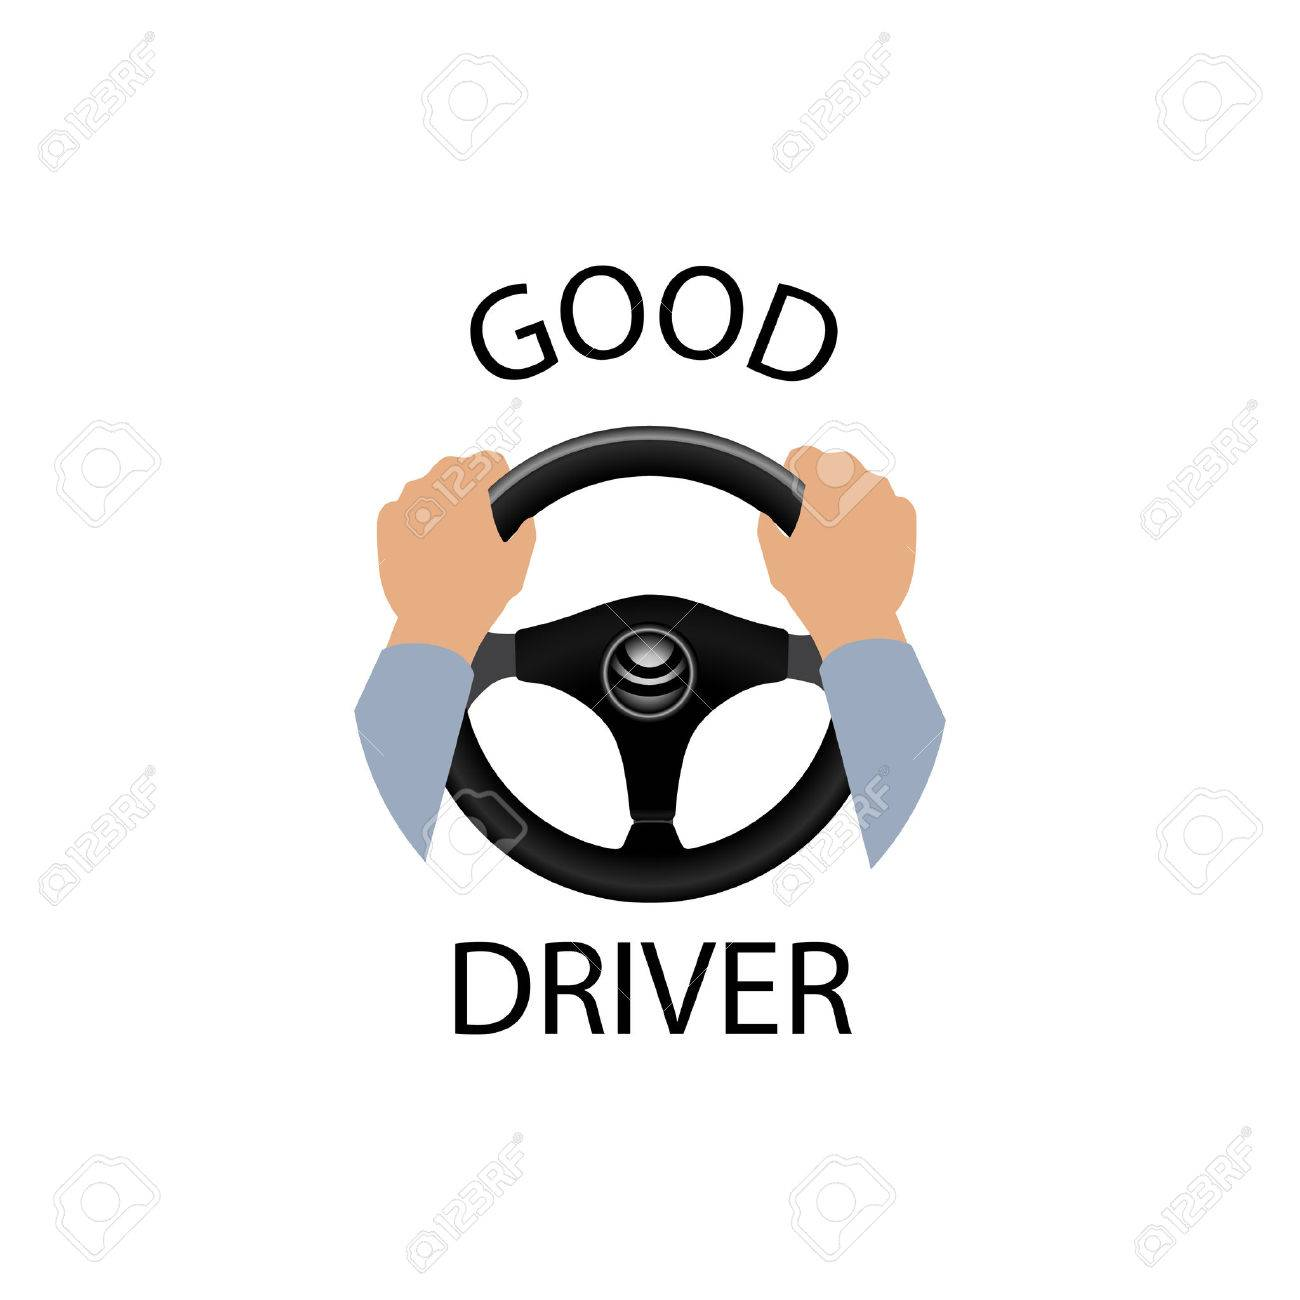 Good driver sign. Diver design element with hands holding steering wheel. Vector icon. - 61188191